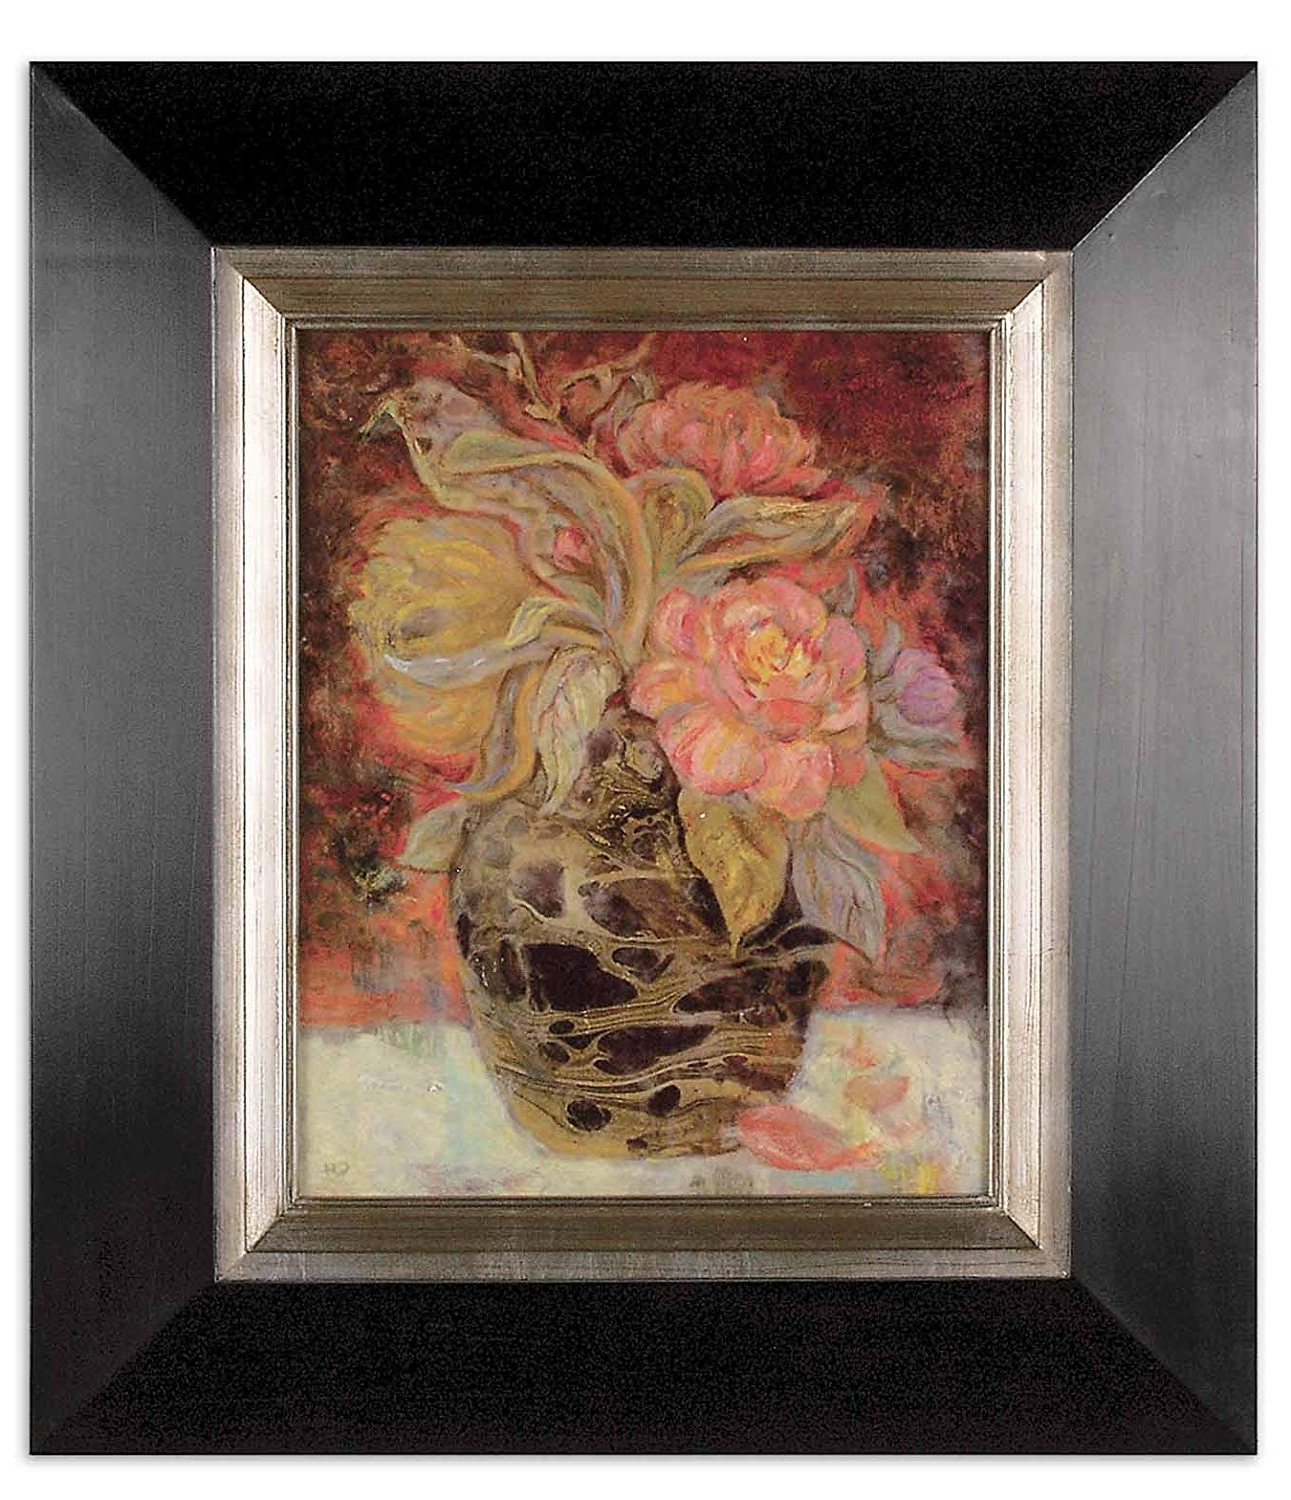 Latest Uttermost Wall Art With Regard To Amazon: Uttermost Floral Bunda Wall Decor: Oil Paintings (View 8 of 15)